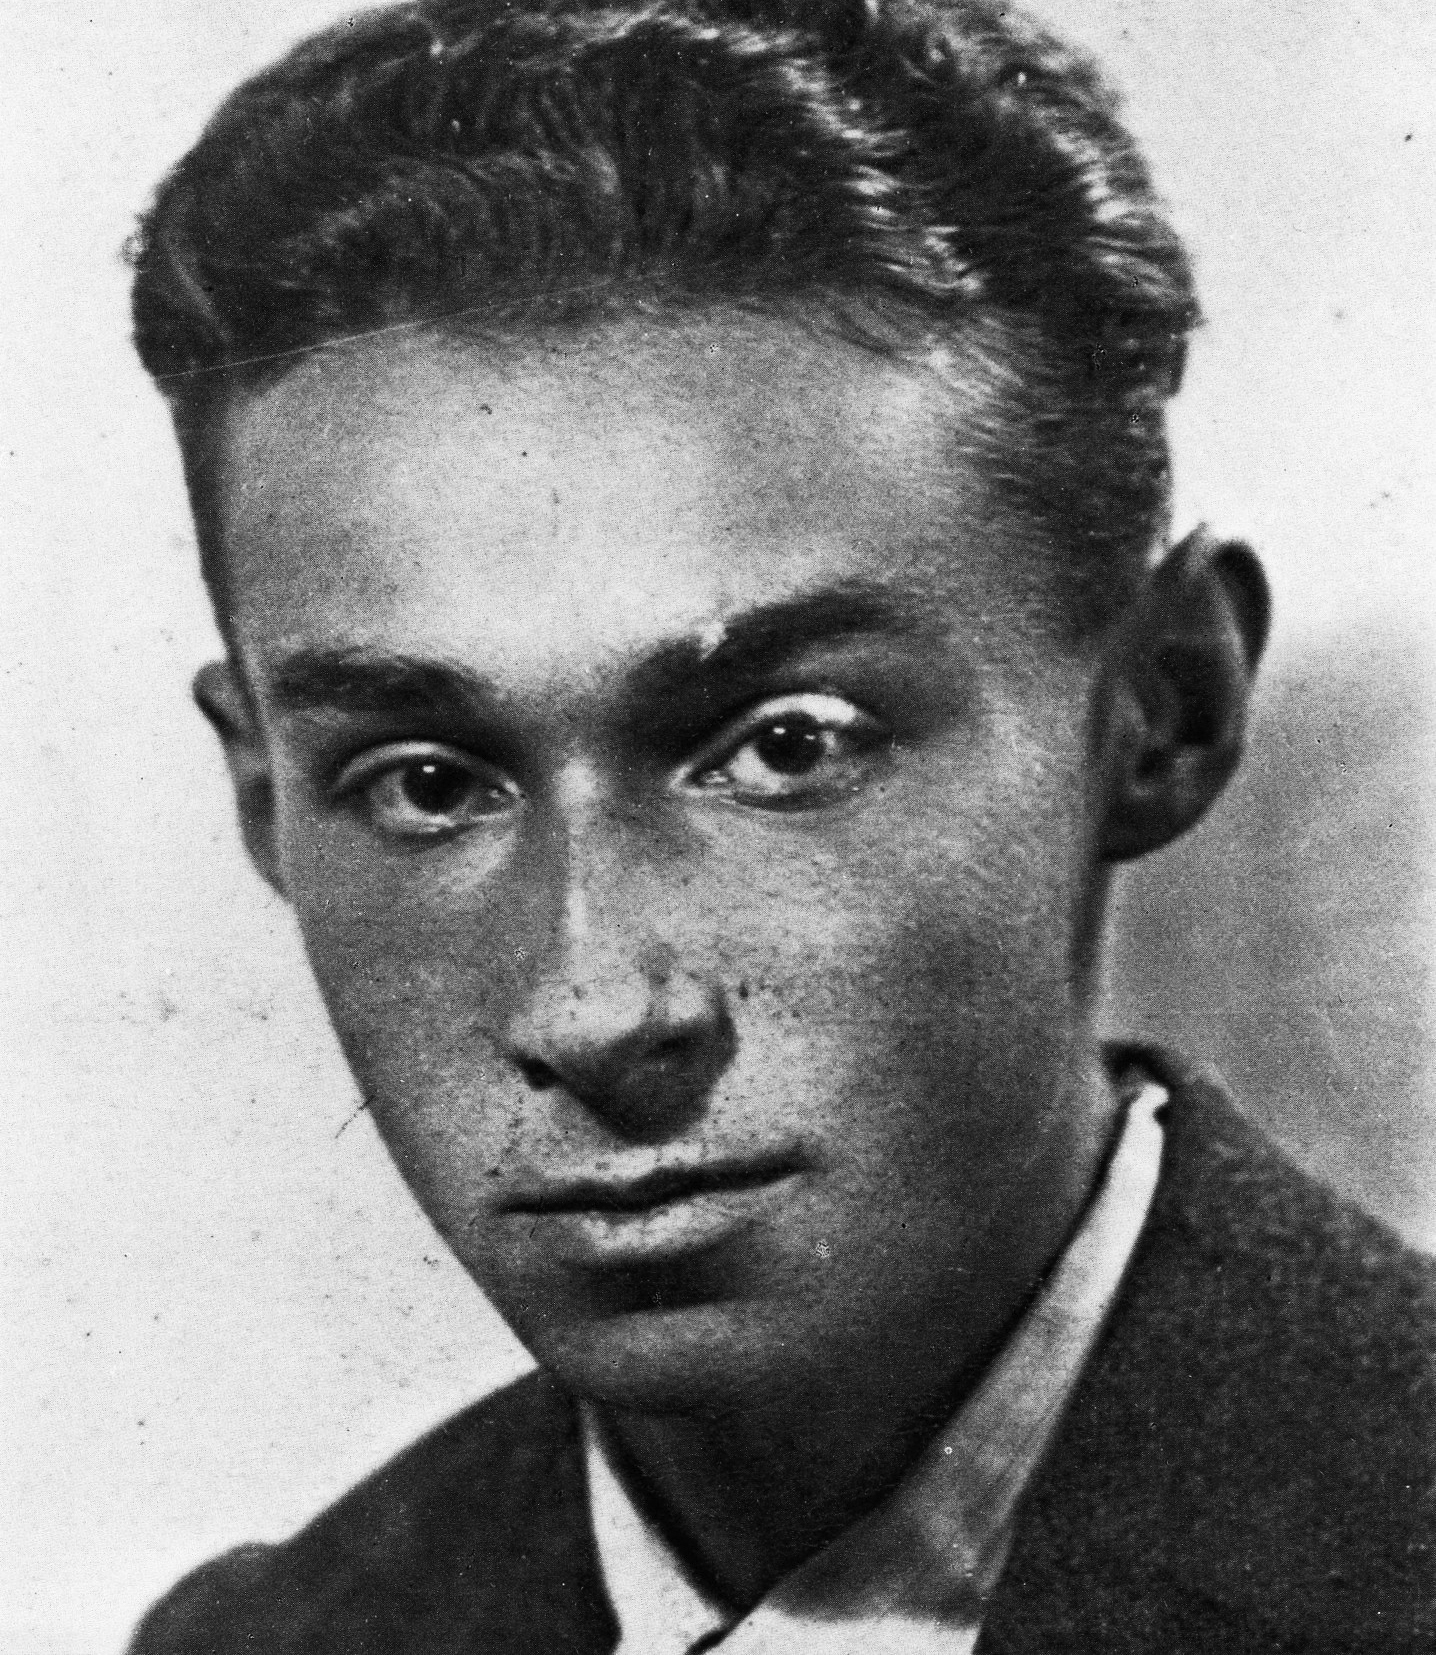 primo levis survival in auschwitz Levi proves that in auschwitz, when reduced down to nothing more than a drone, the fight and struggle for survival takes on a primal form there is no concrete sense of time that is taken back to ancient methods of knowing.